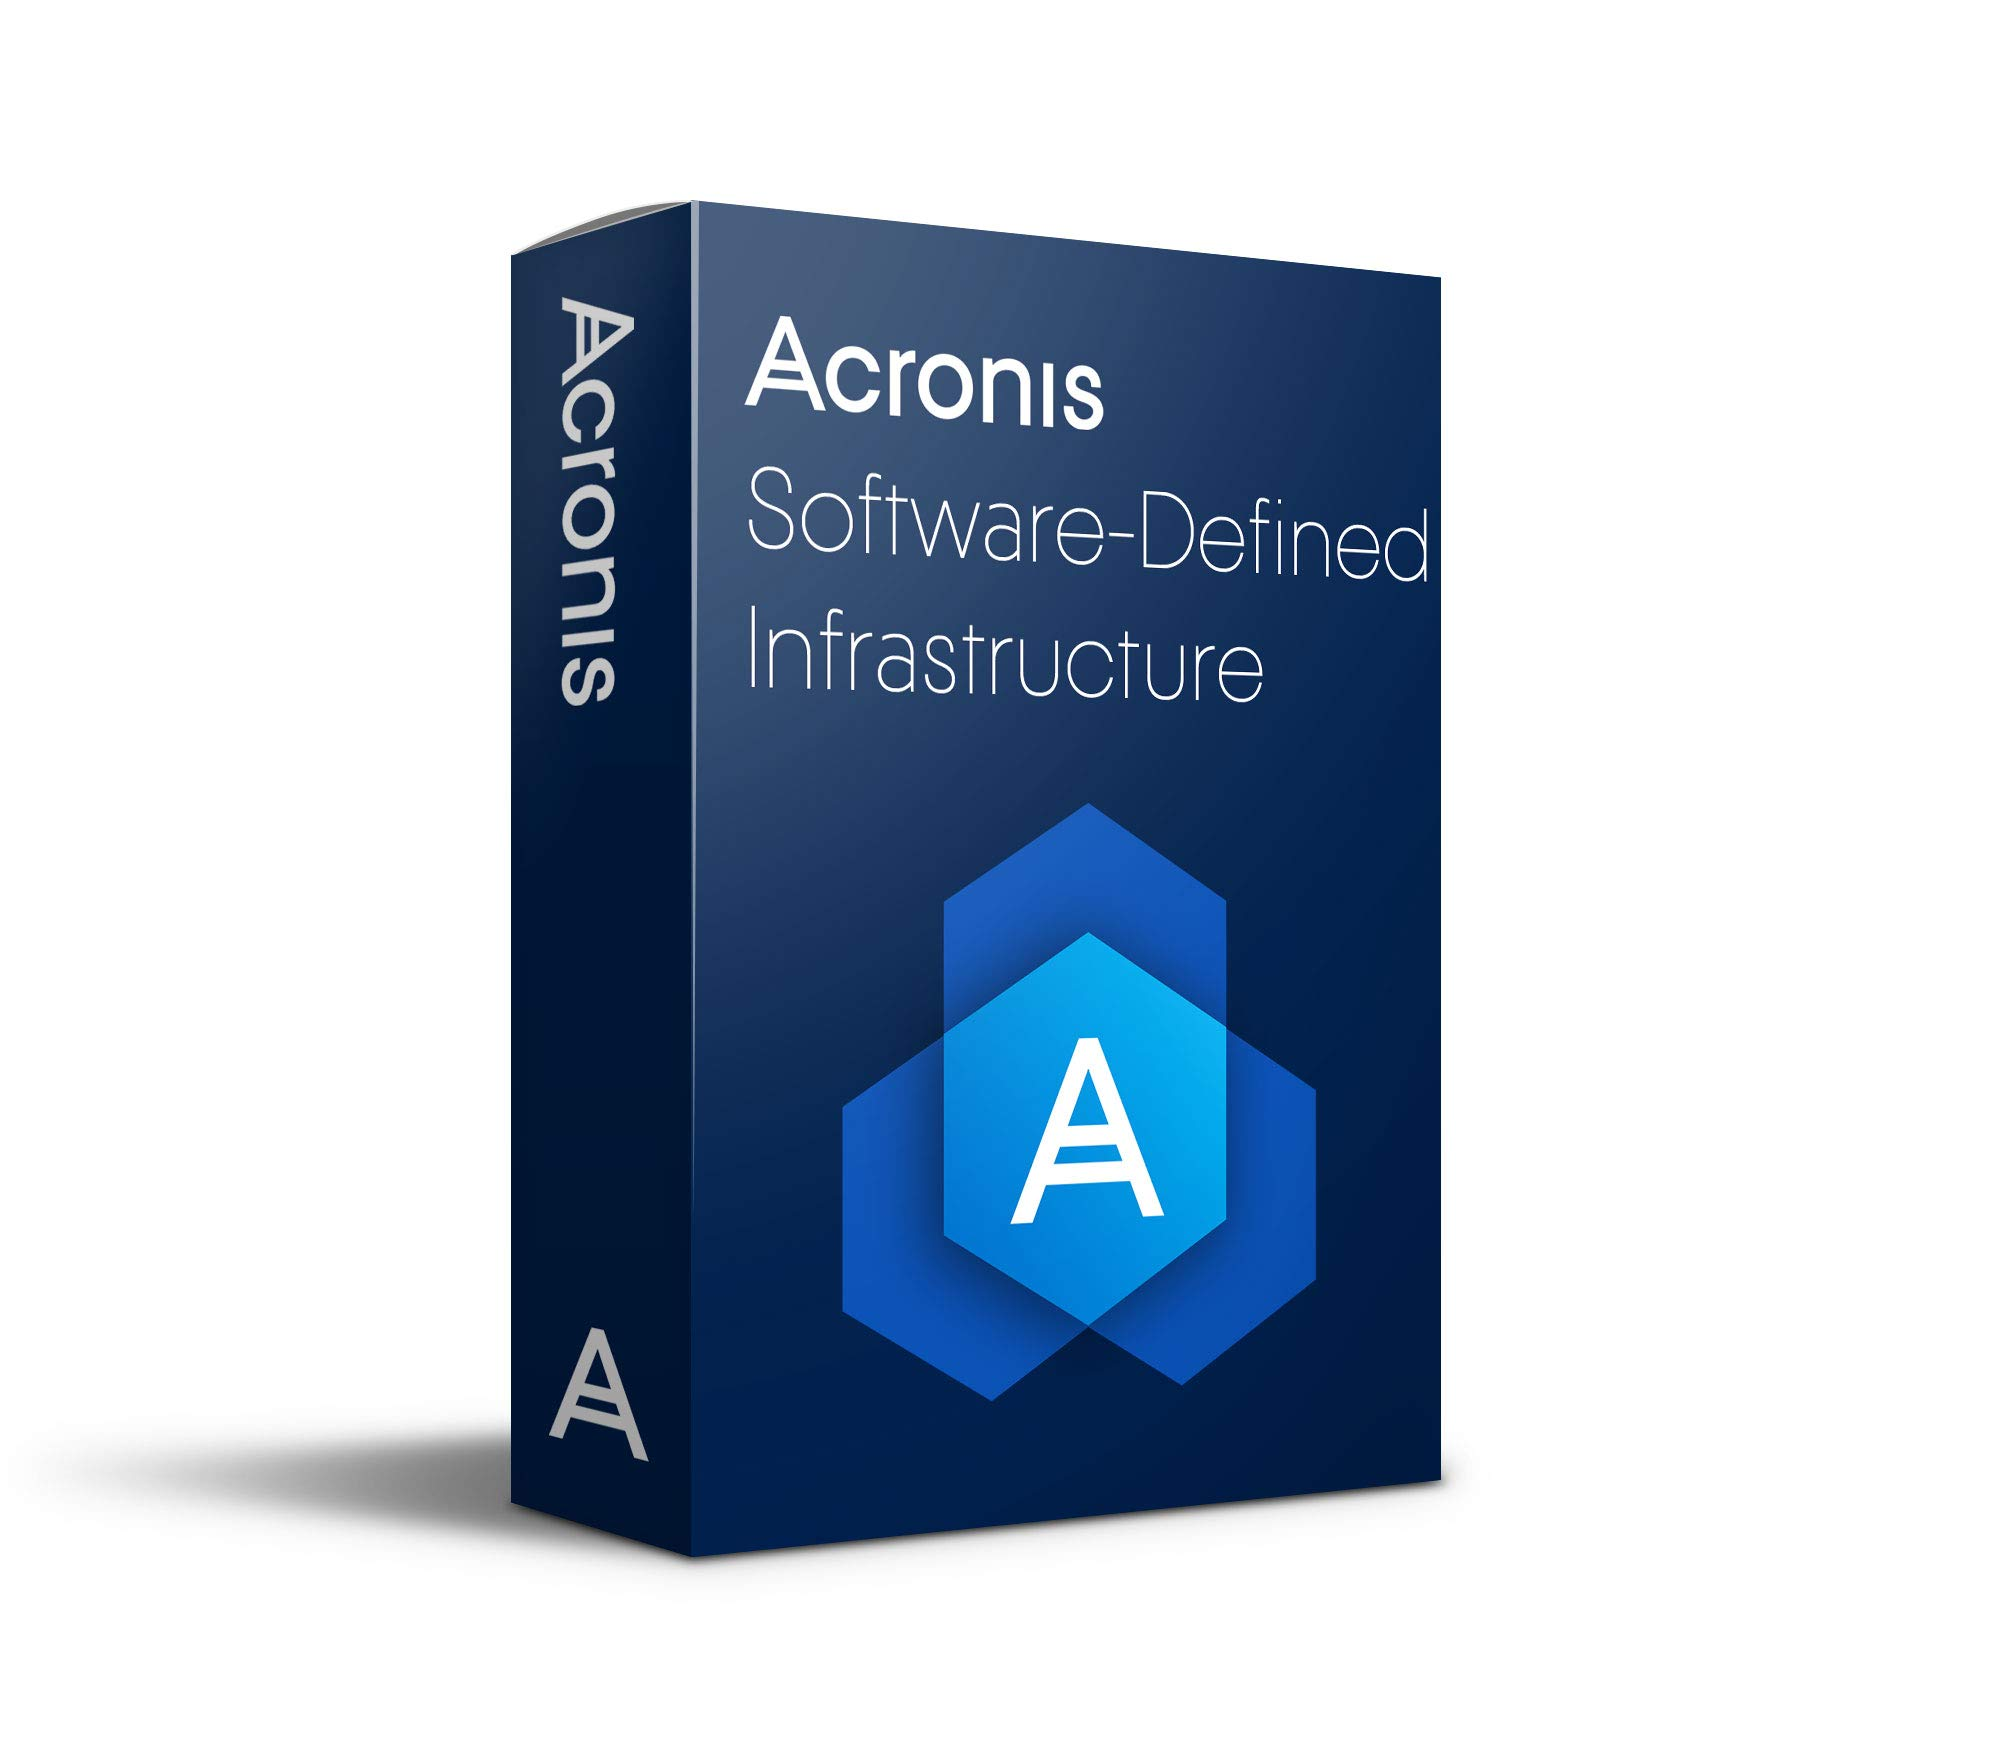 Acronis | SCPBEBLOS11 | Software-Defined Infrastructure Subscription License 10 TB, 1 Year by Acronis